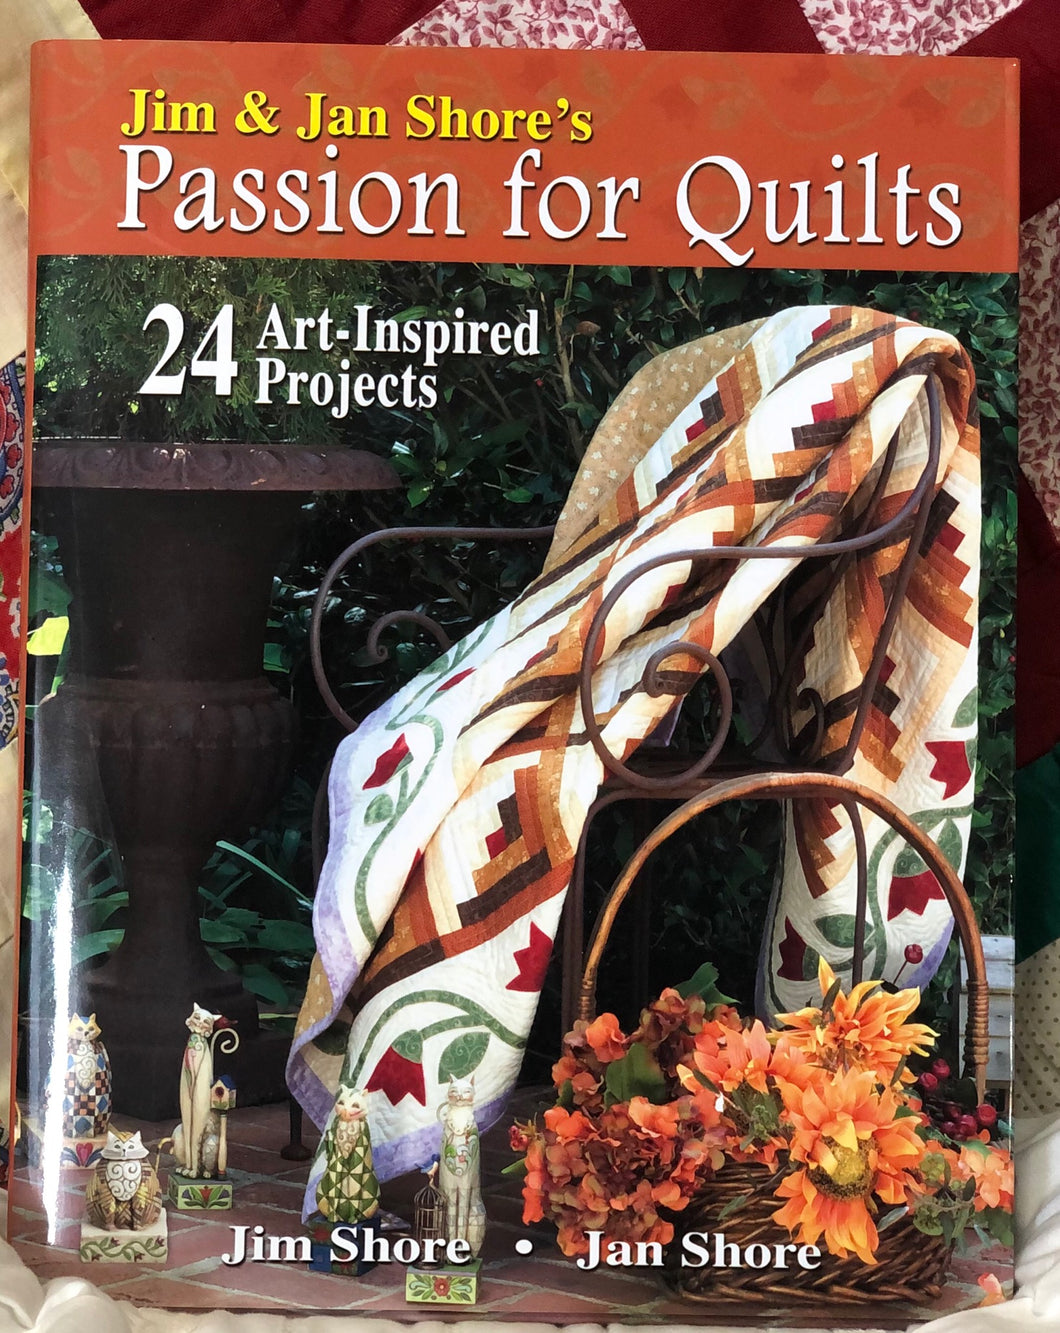 Passion for Quilts ~ Hardcover Book